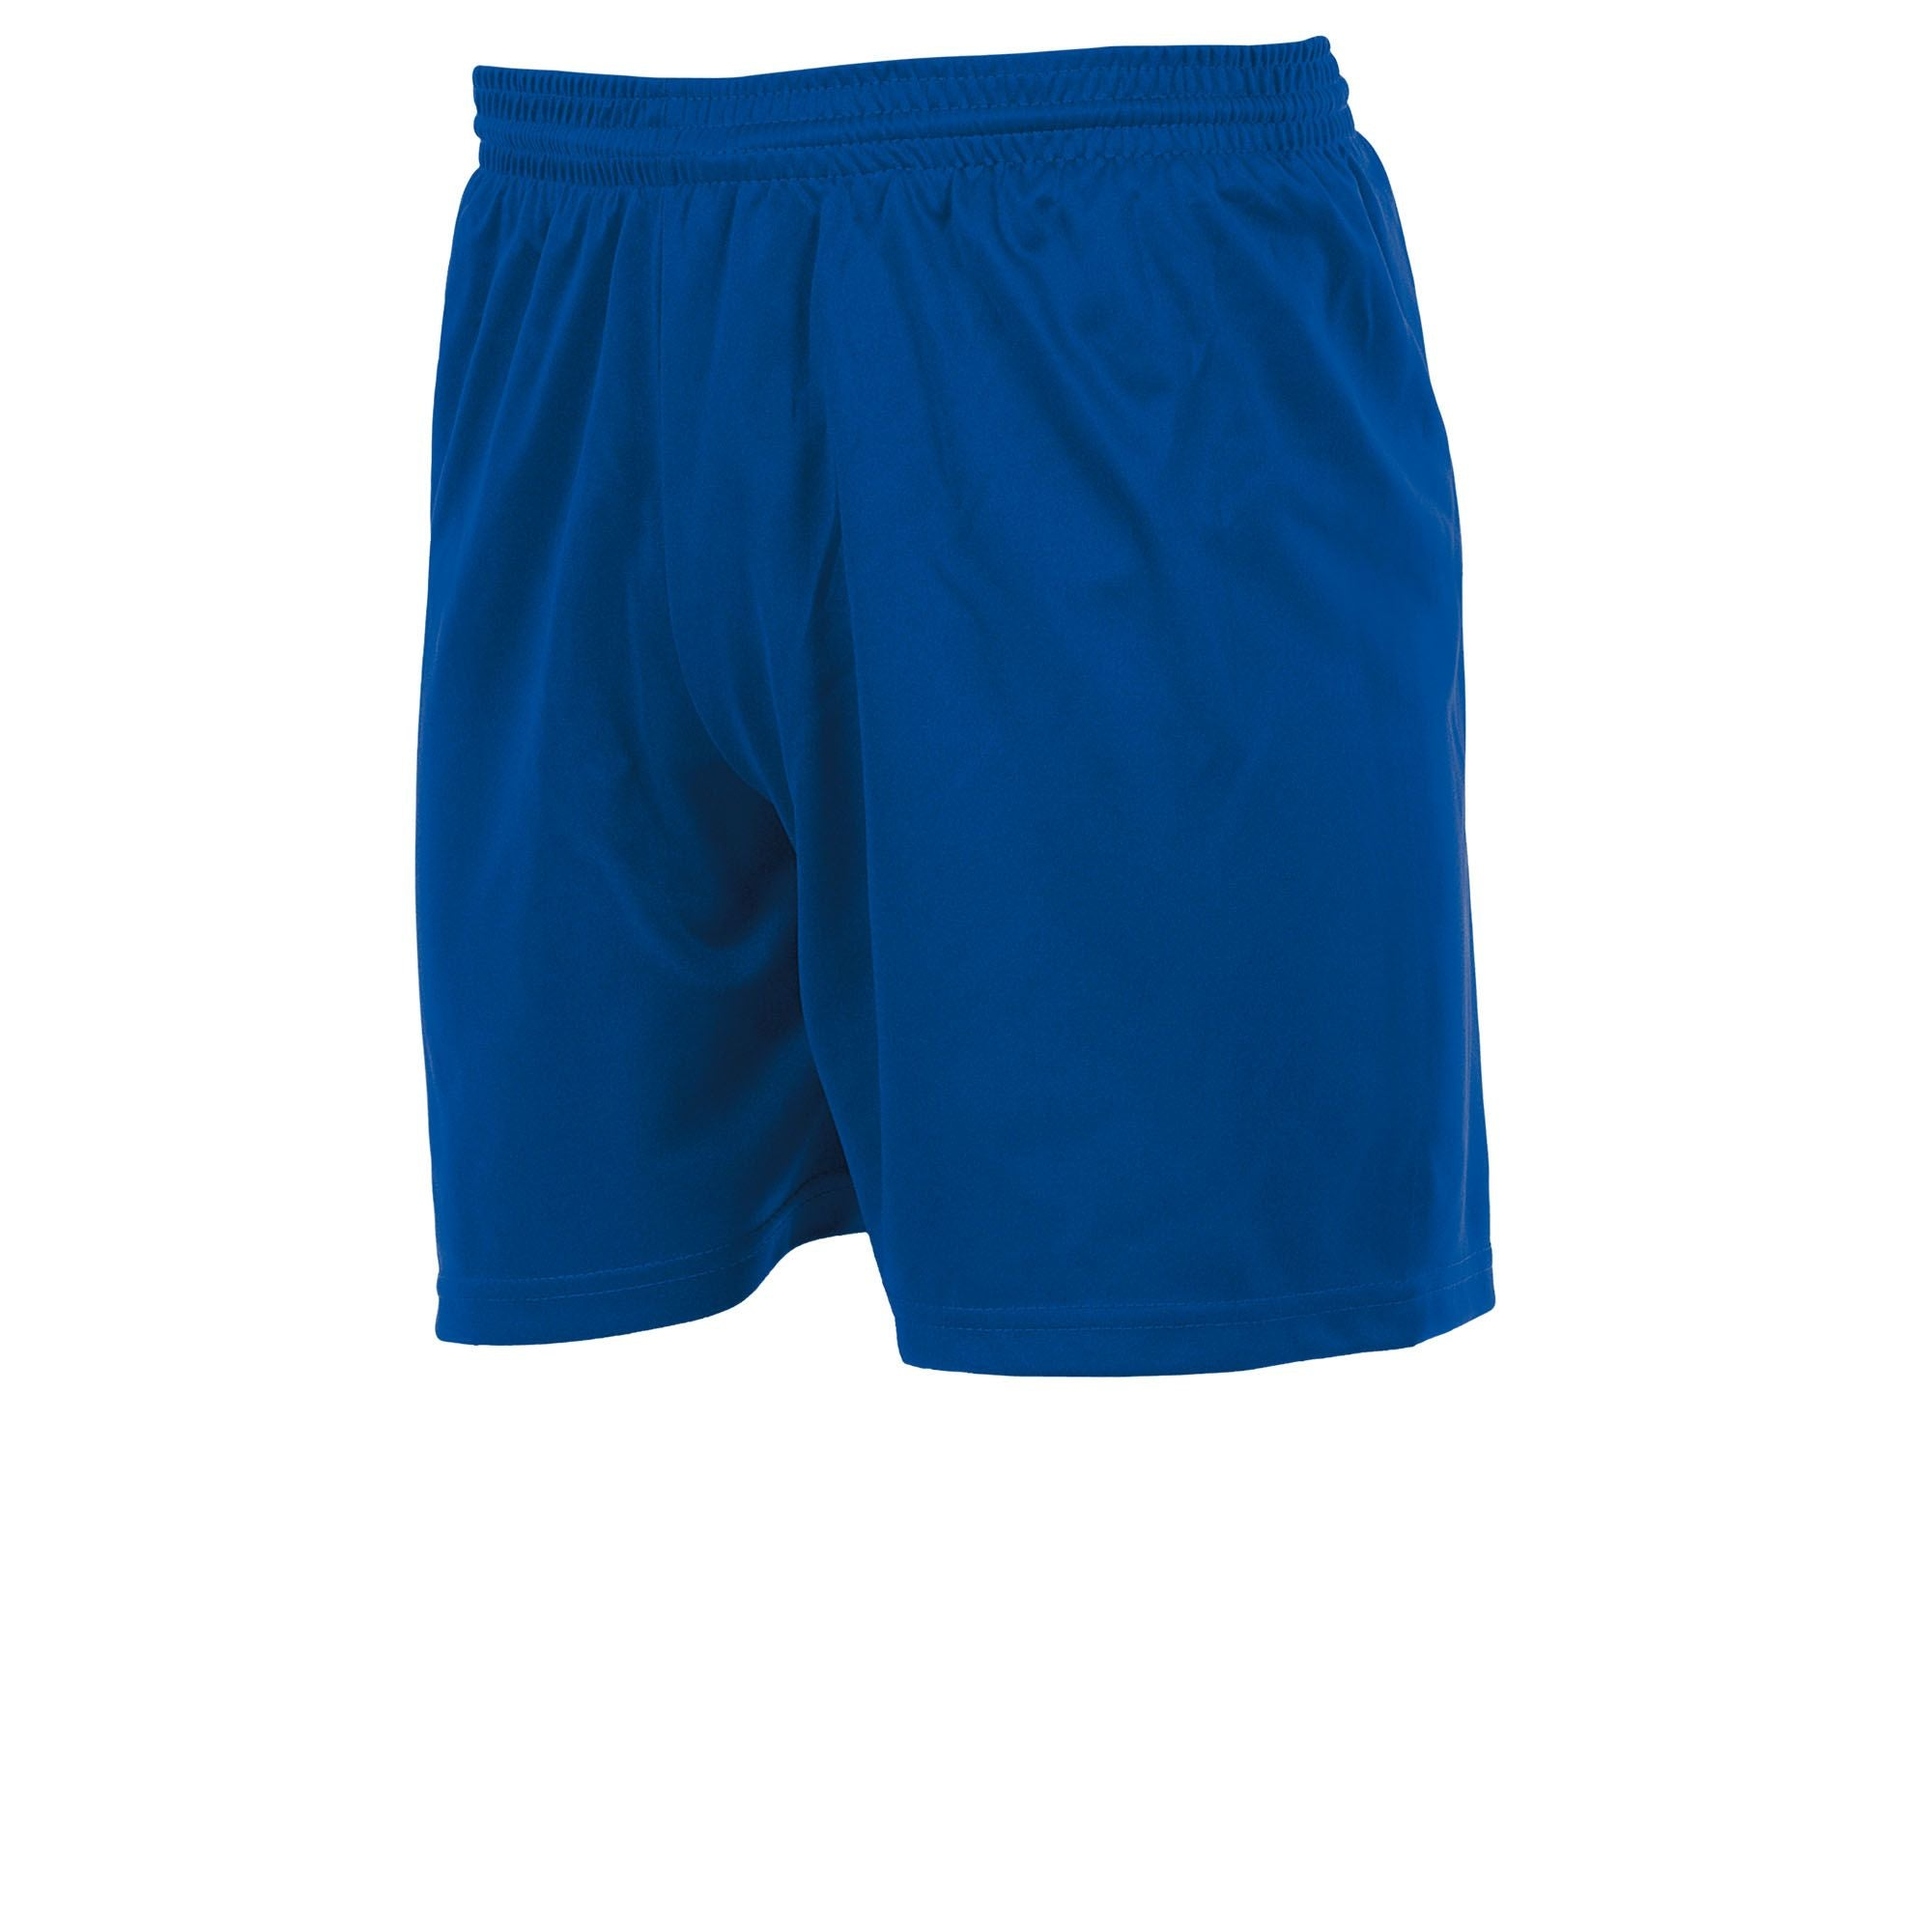 Stanno Universal Shorts - Royal